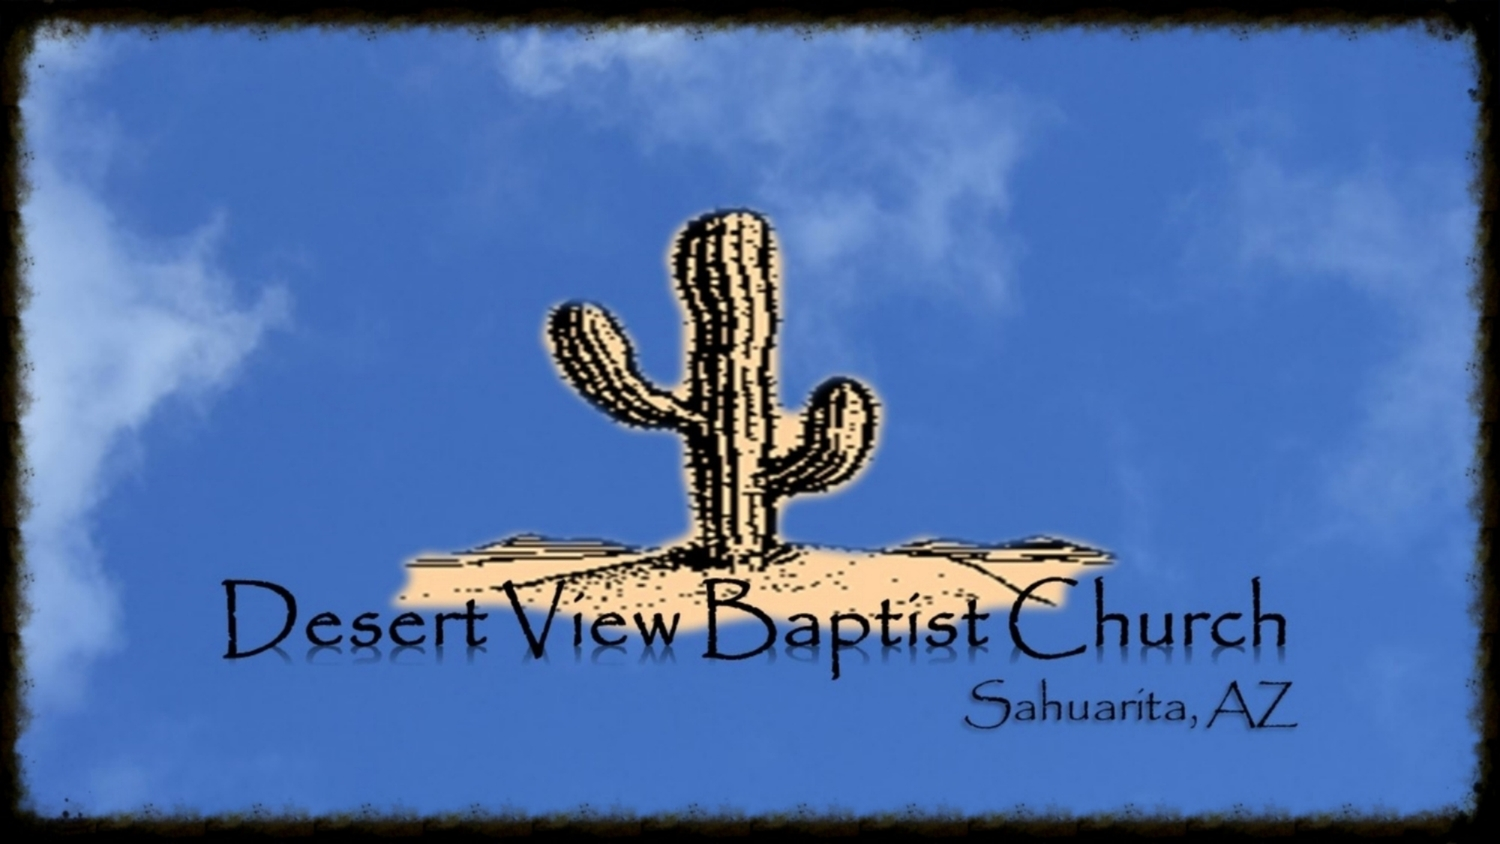 Desert View Baptist Church